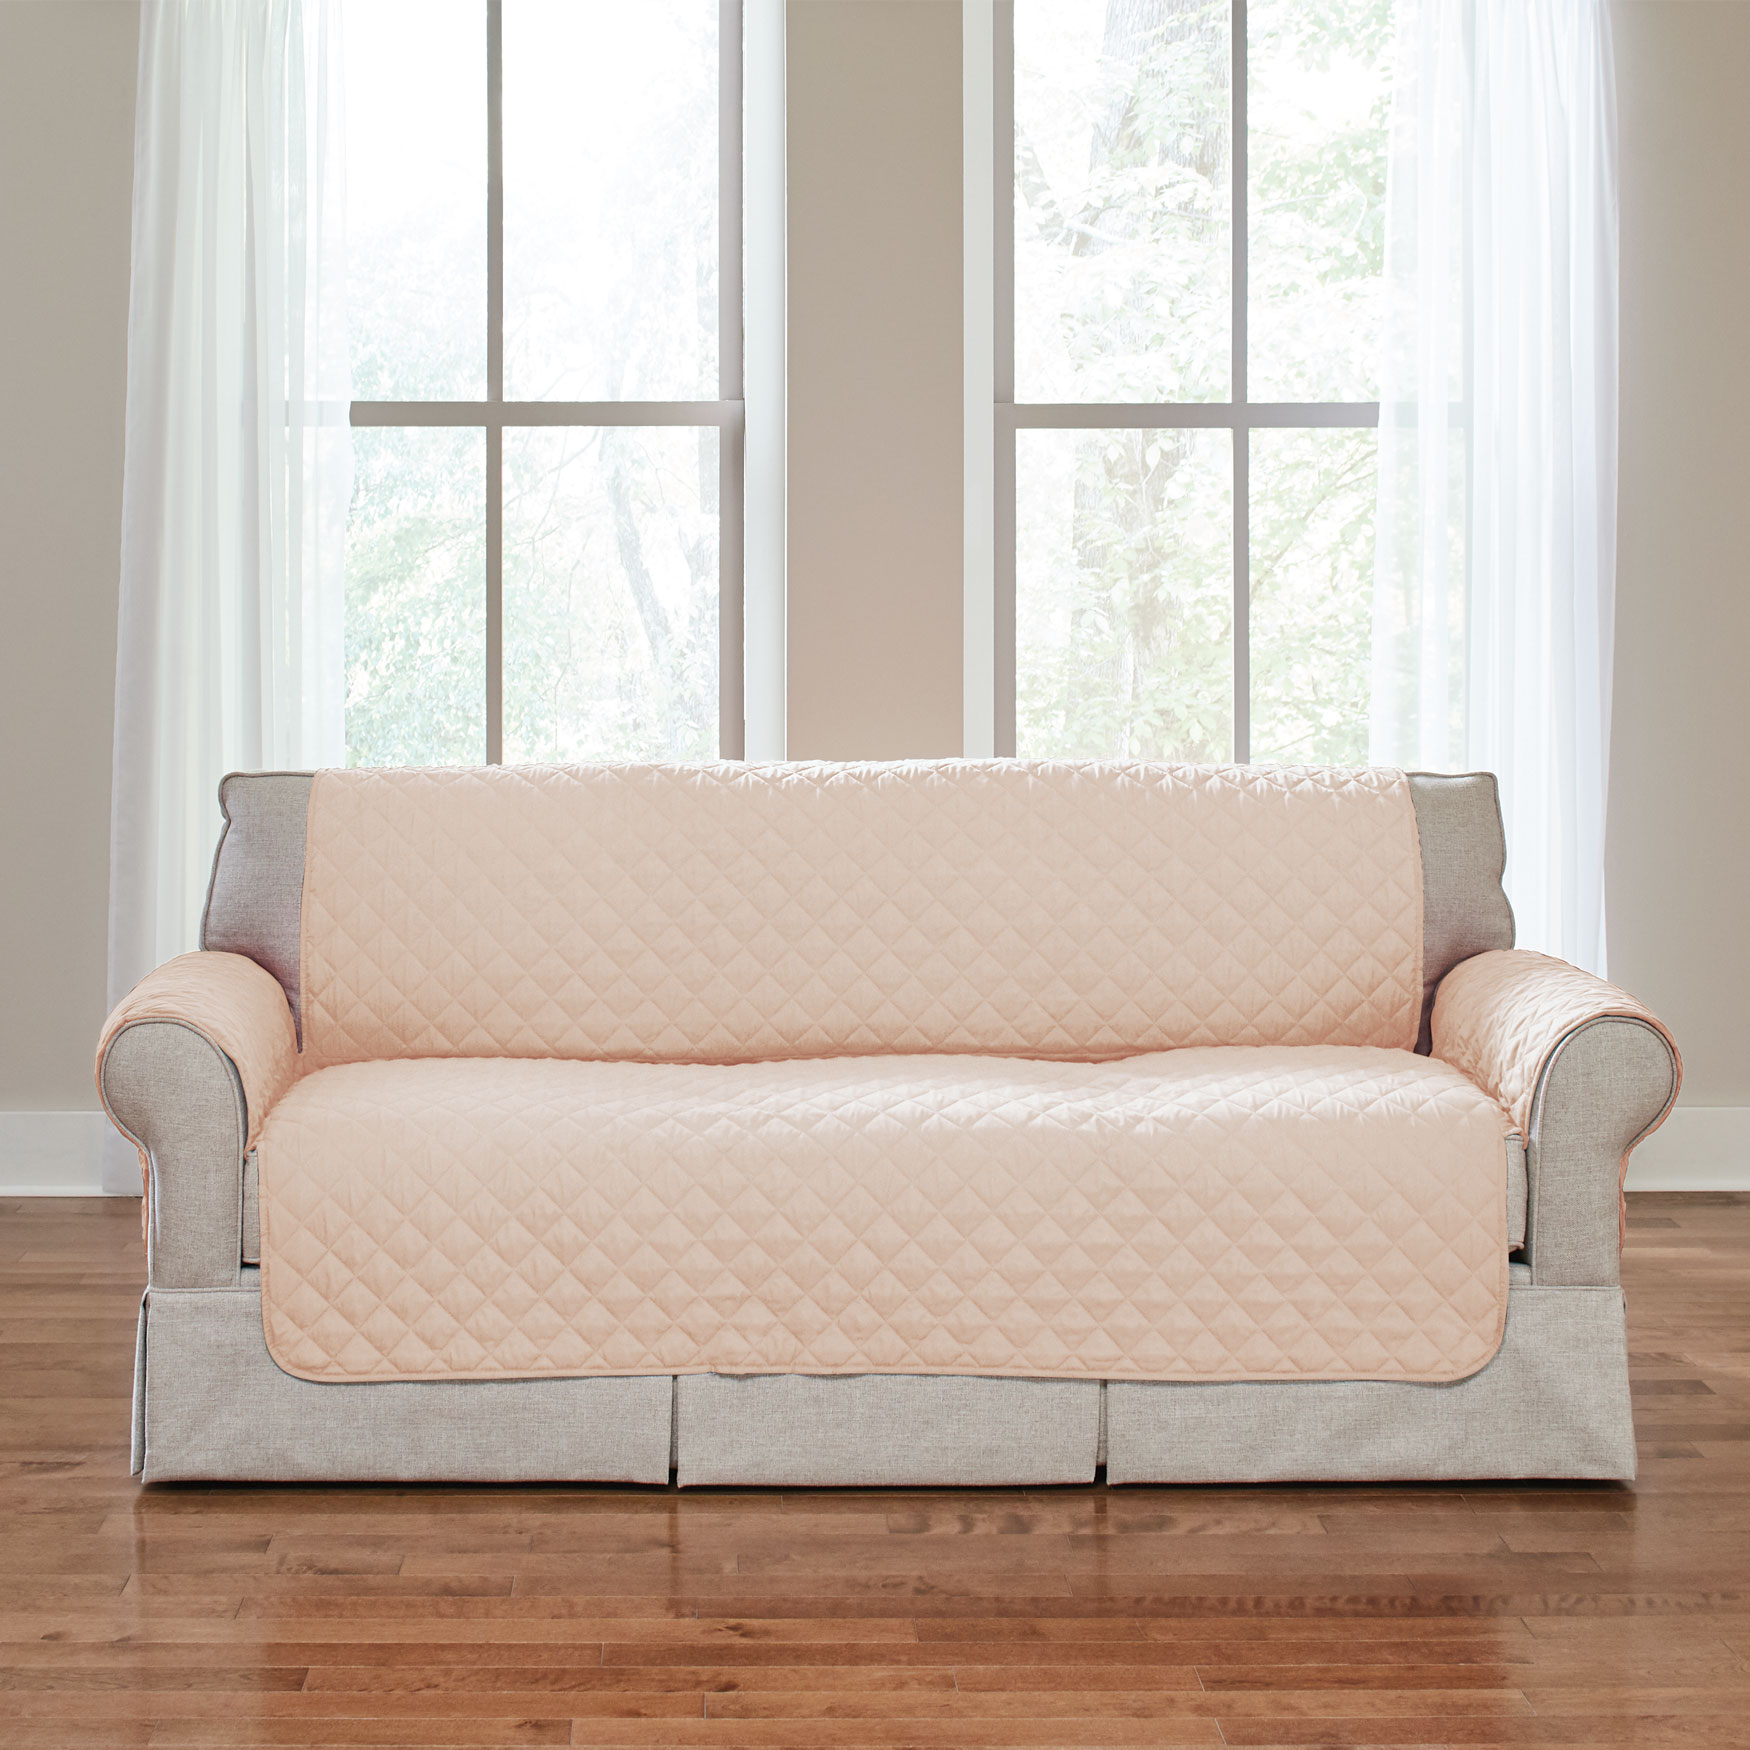 BH Studio Water-Repellent Microfiber Sofa Protector,